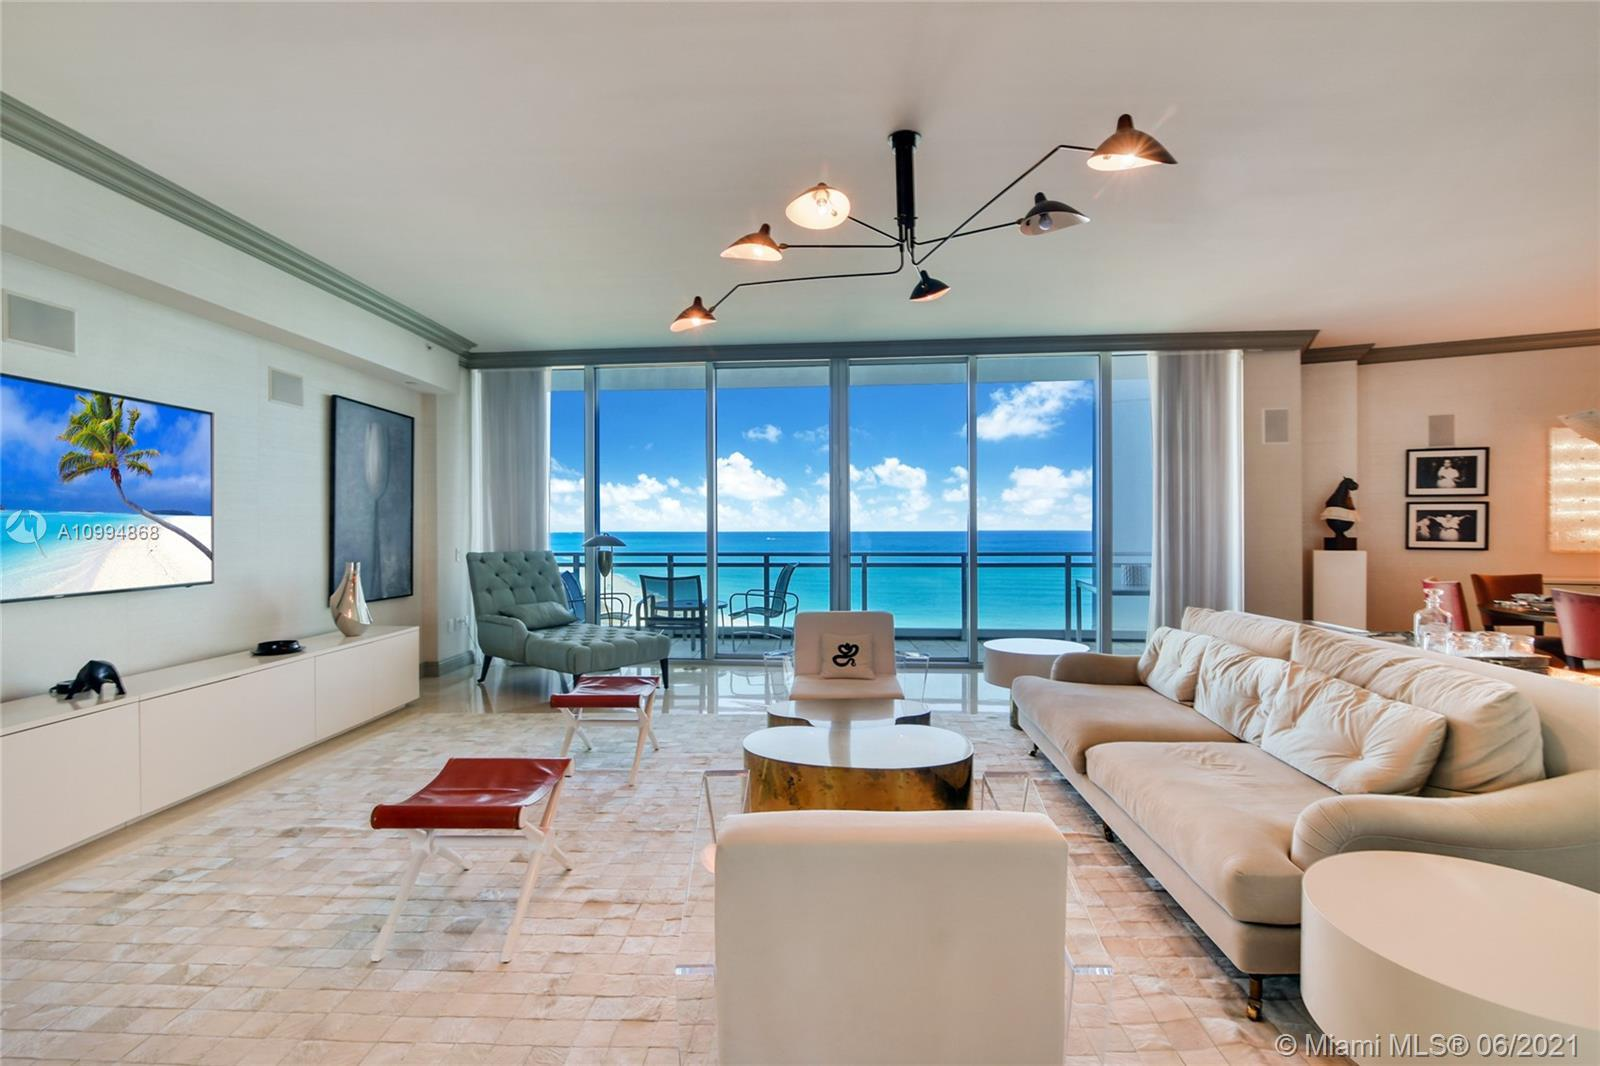 $500 K Price Reduction for a Quick sale  ! PANORAMIC DIRECT OCEAN, INTRACOASTAL & MIAMI SKYLINE VIEW